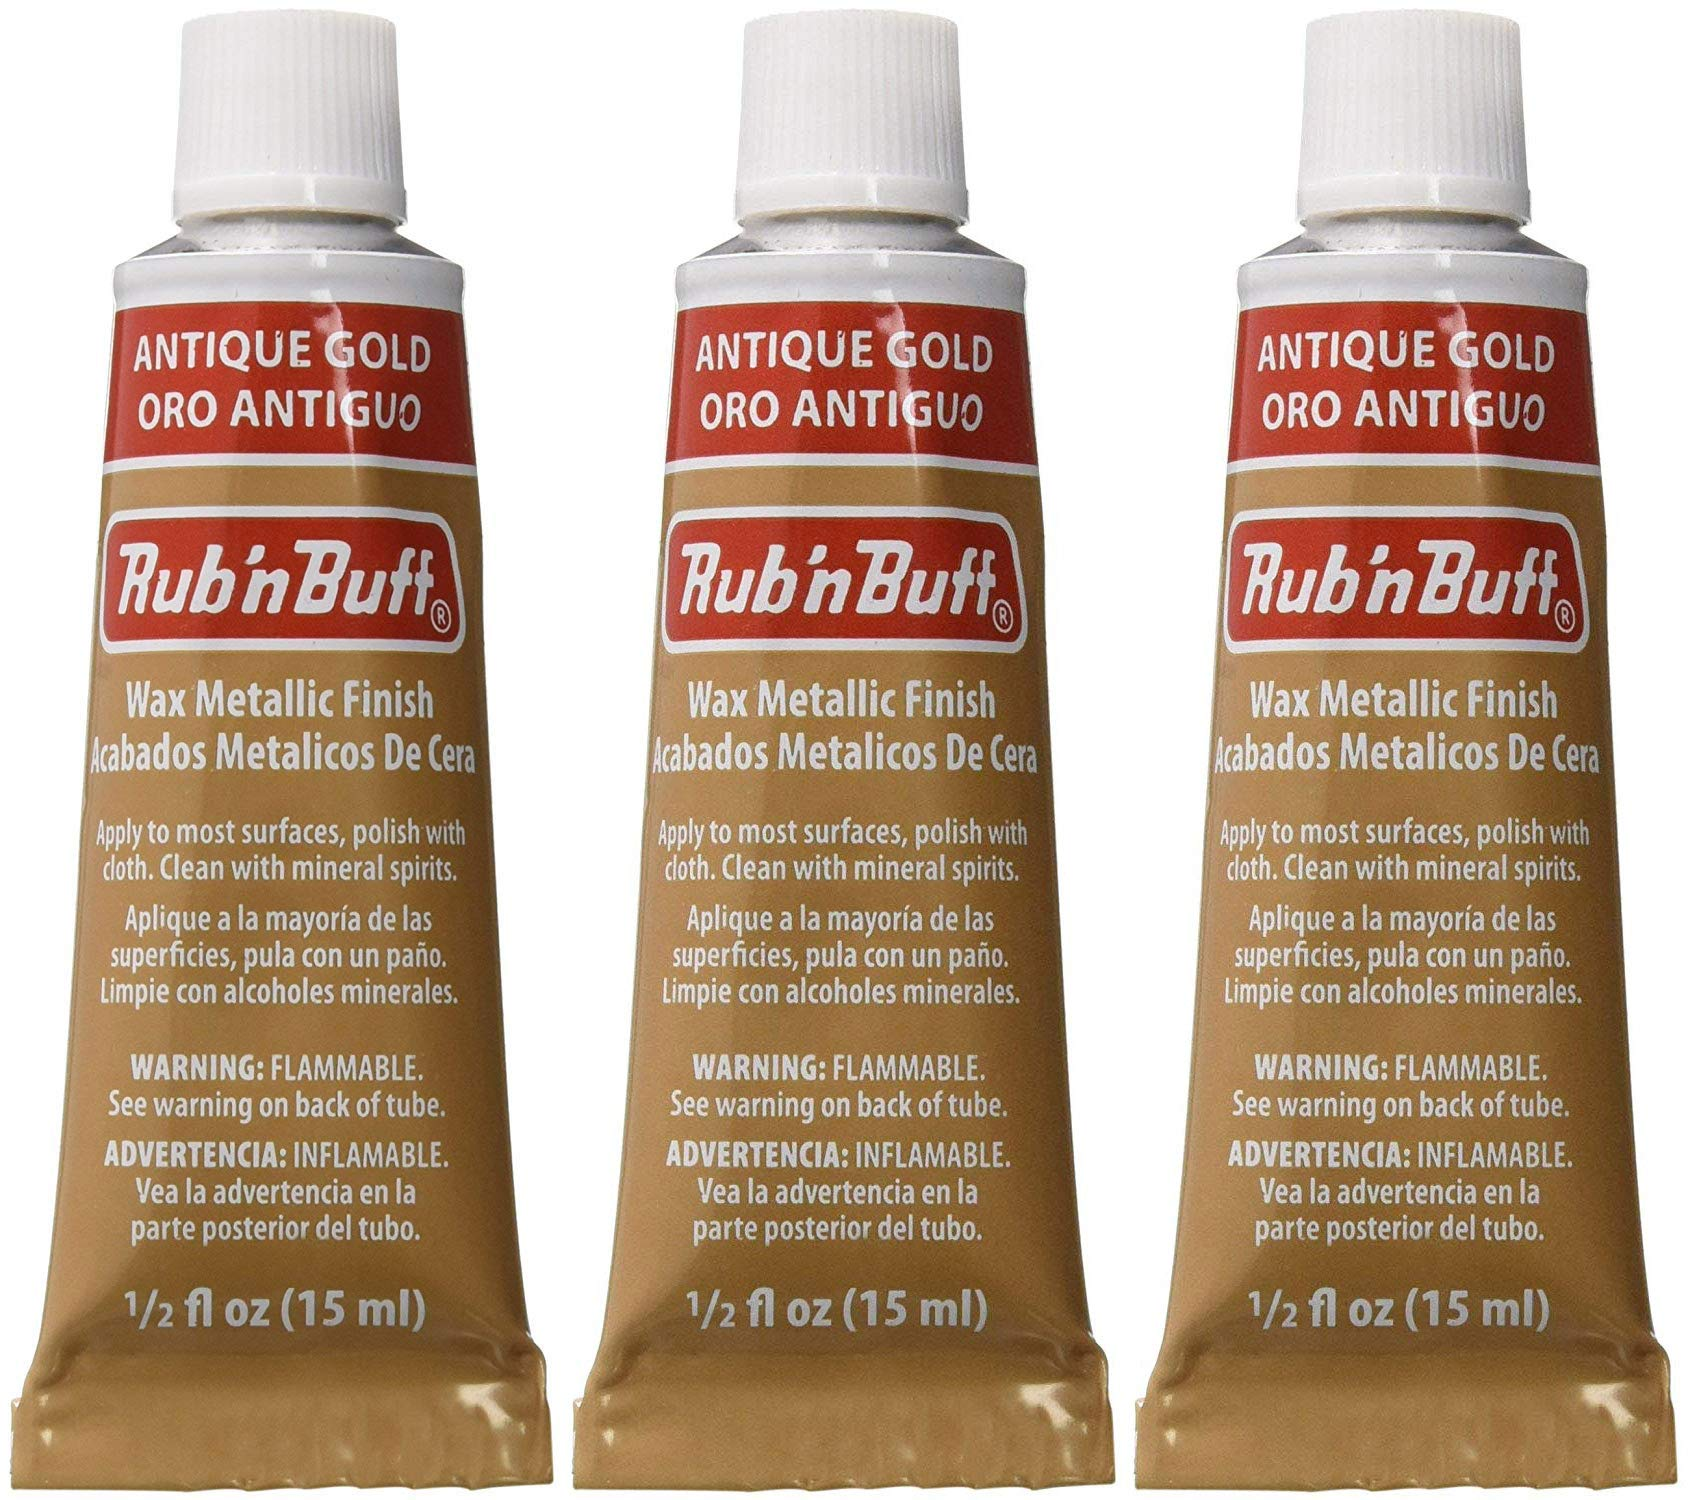 Rub 'n Buff The Original Wax Metallic Finish antique gold [PACK OF 3 ] by Rub N Buff